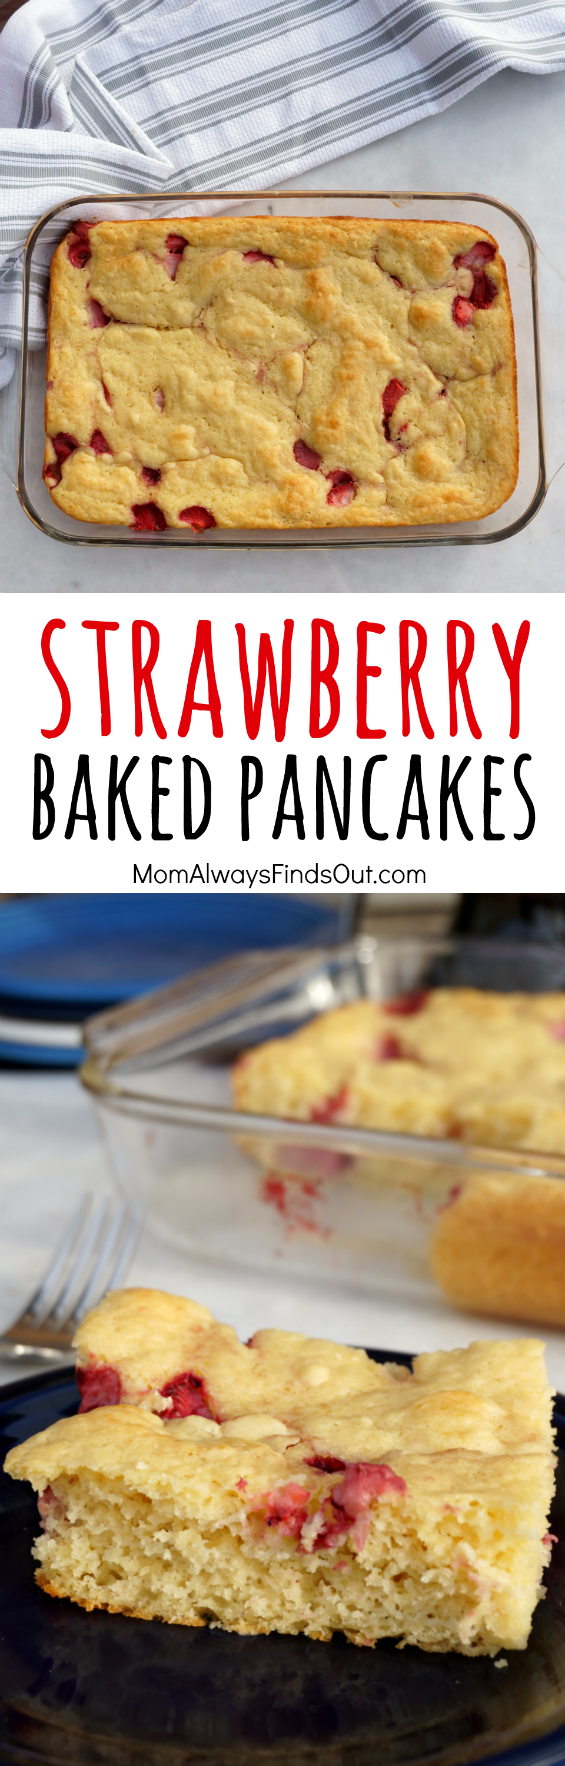 Strawberry Baked Pancakes | Recipe in 2020 | Baked ...